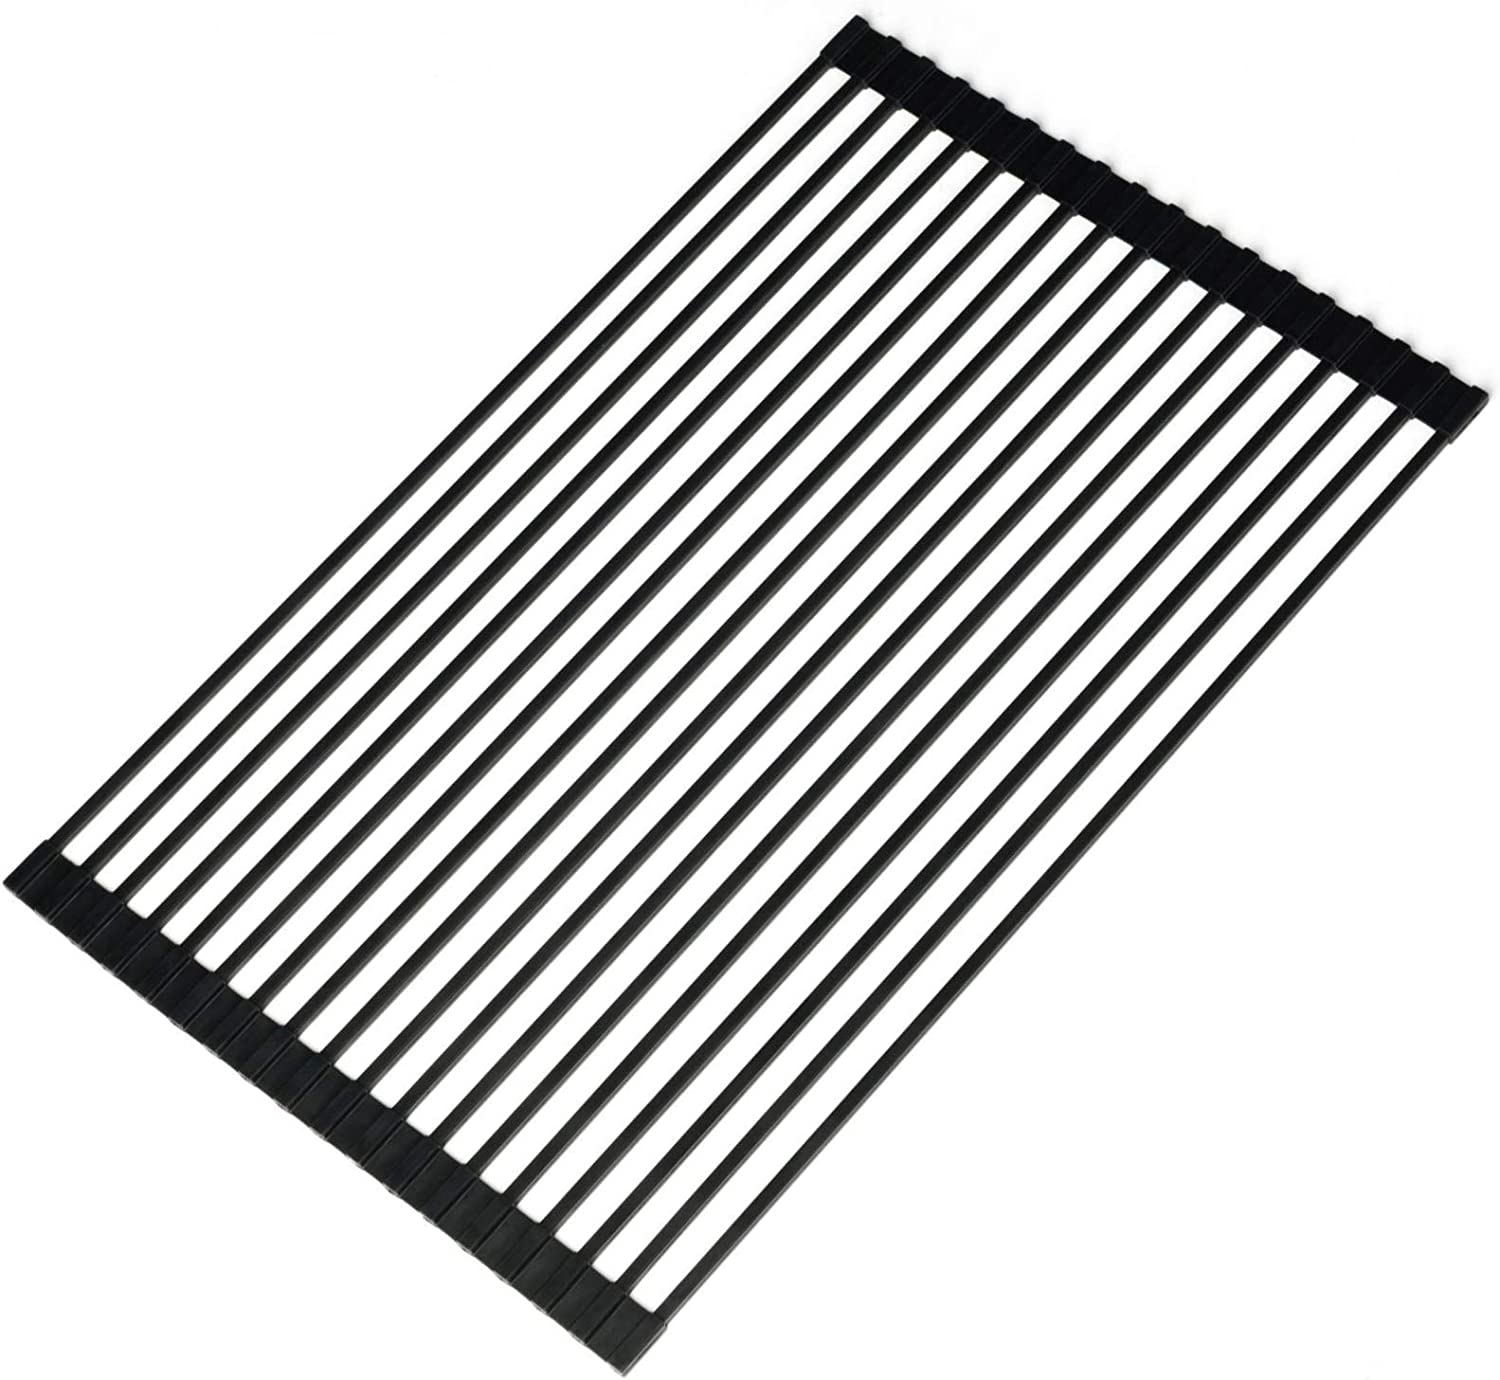 Ahyuan Large Roll-up Dish Drying Rack Multipurpose Silicone Wrapped Metal Steel Square Solid Bars Dishes Drainer Rack Large Foldable Over Sink Kitchen Drainer Rack (Matte Black)